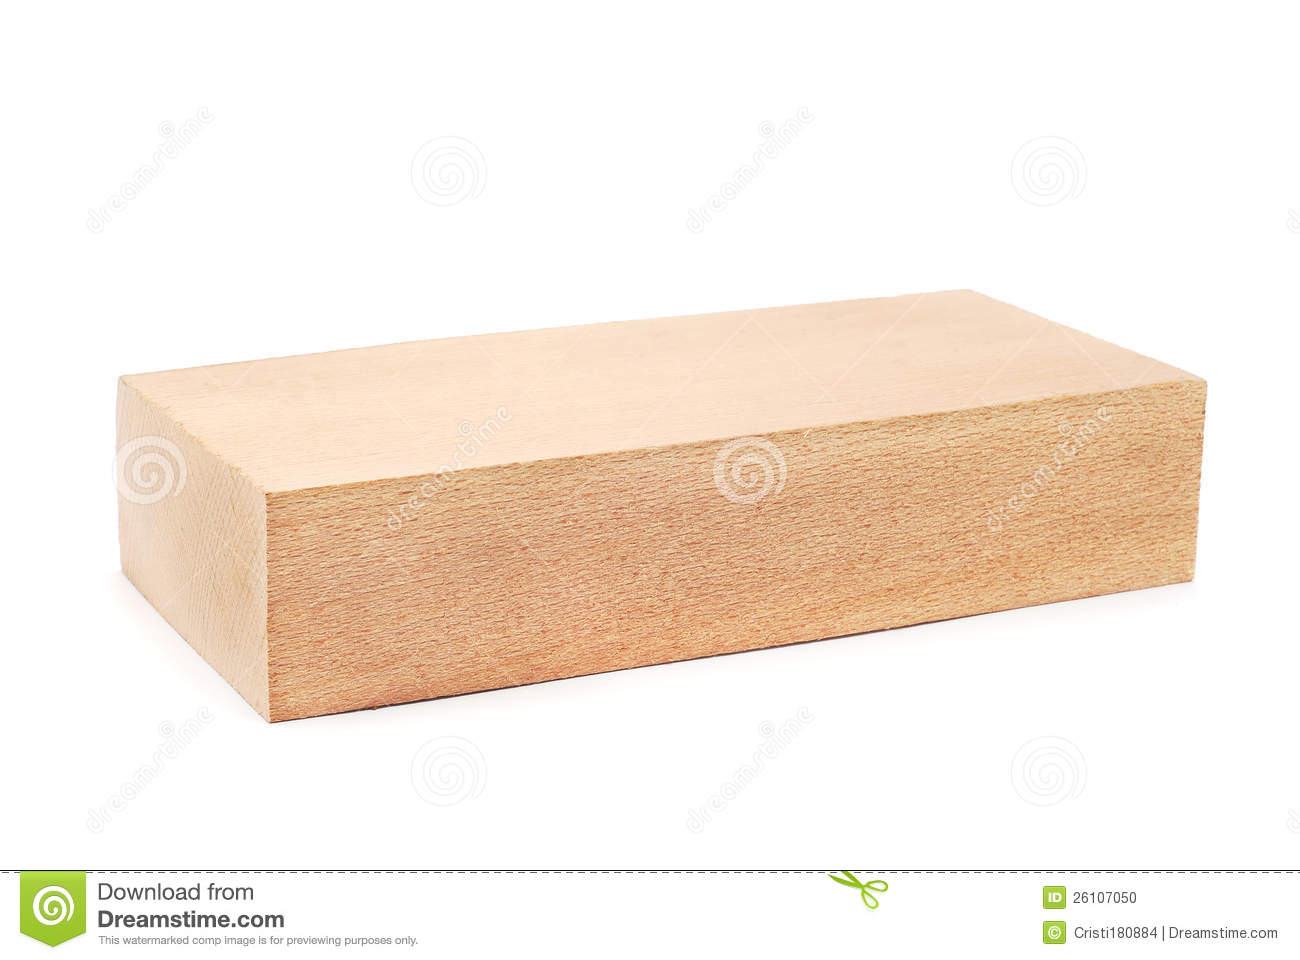 Wooden Block Stock Photo - Image: 26107050